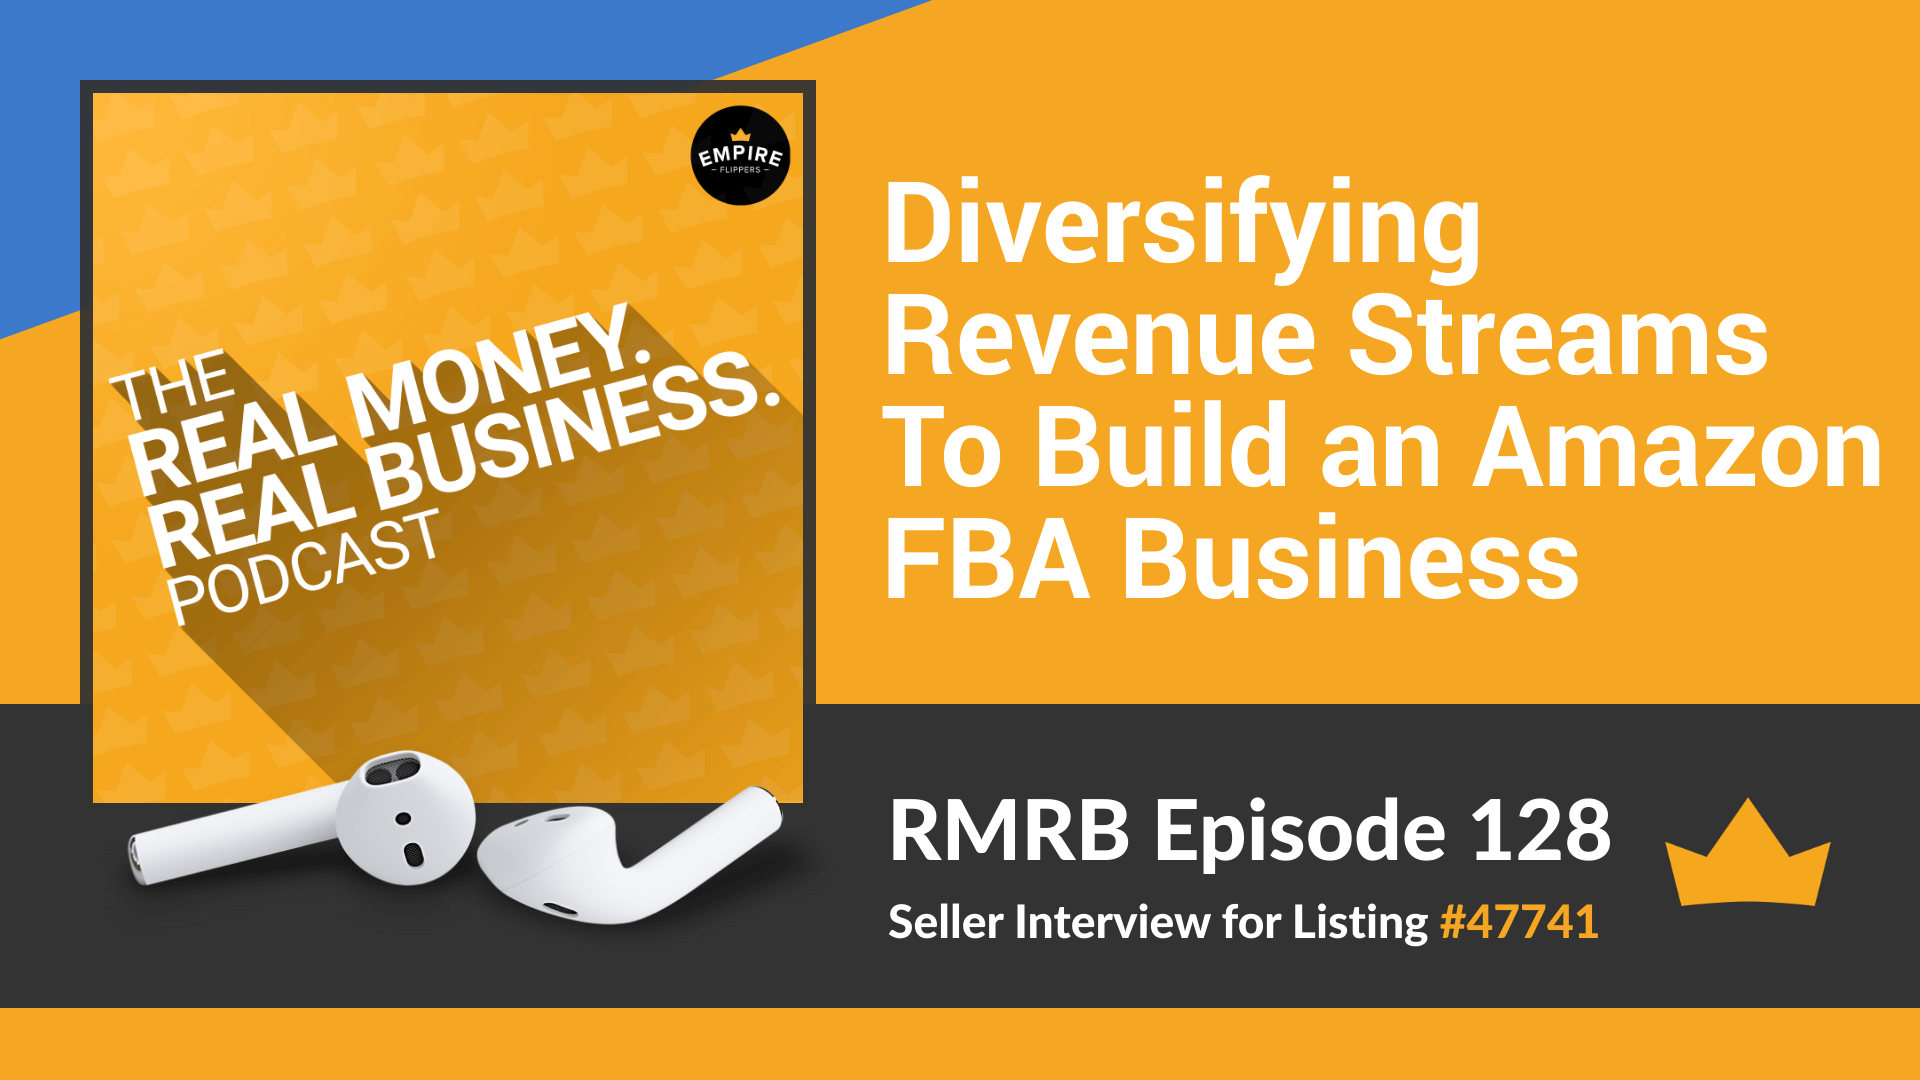 RMRB 128 - Diversifying Revenue Streams To Build an Amazon FBA Business